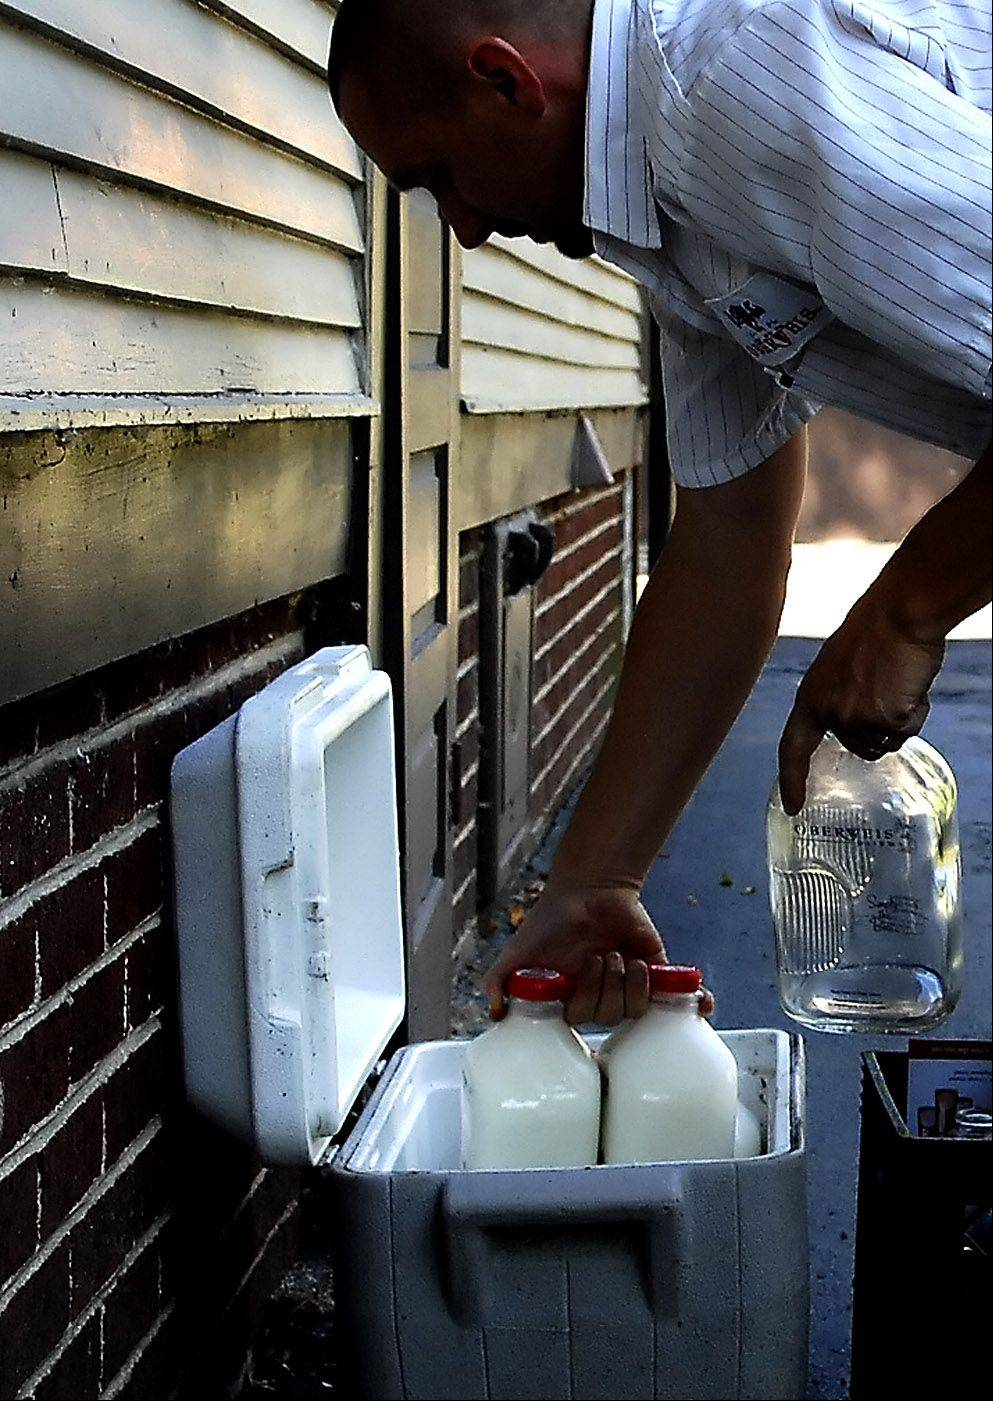 An Oberweis Dairy milk deliveryman makes his rounds in Batavia. On Jan. 4, someone stole milk, orange juice and water out of delivery coolers at 11 homes in Geneva.